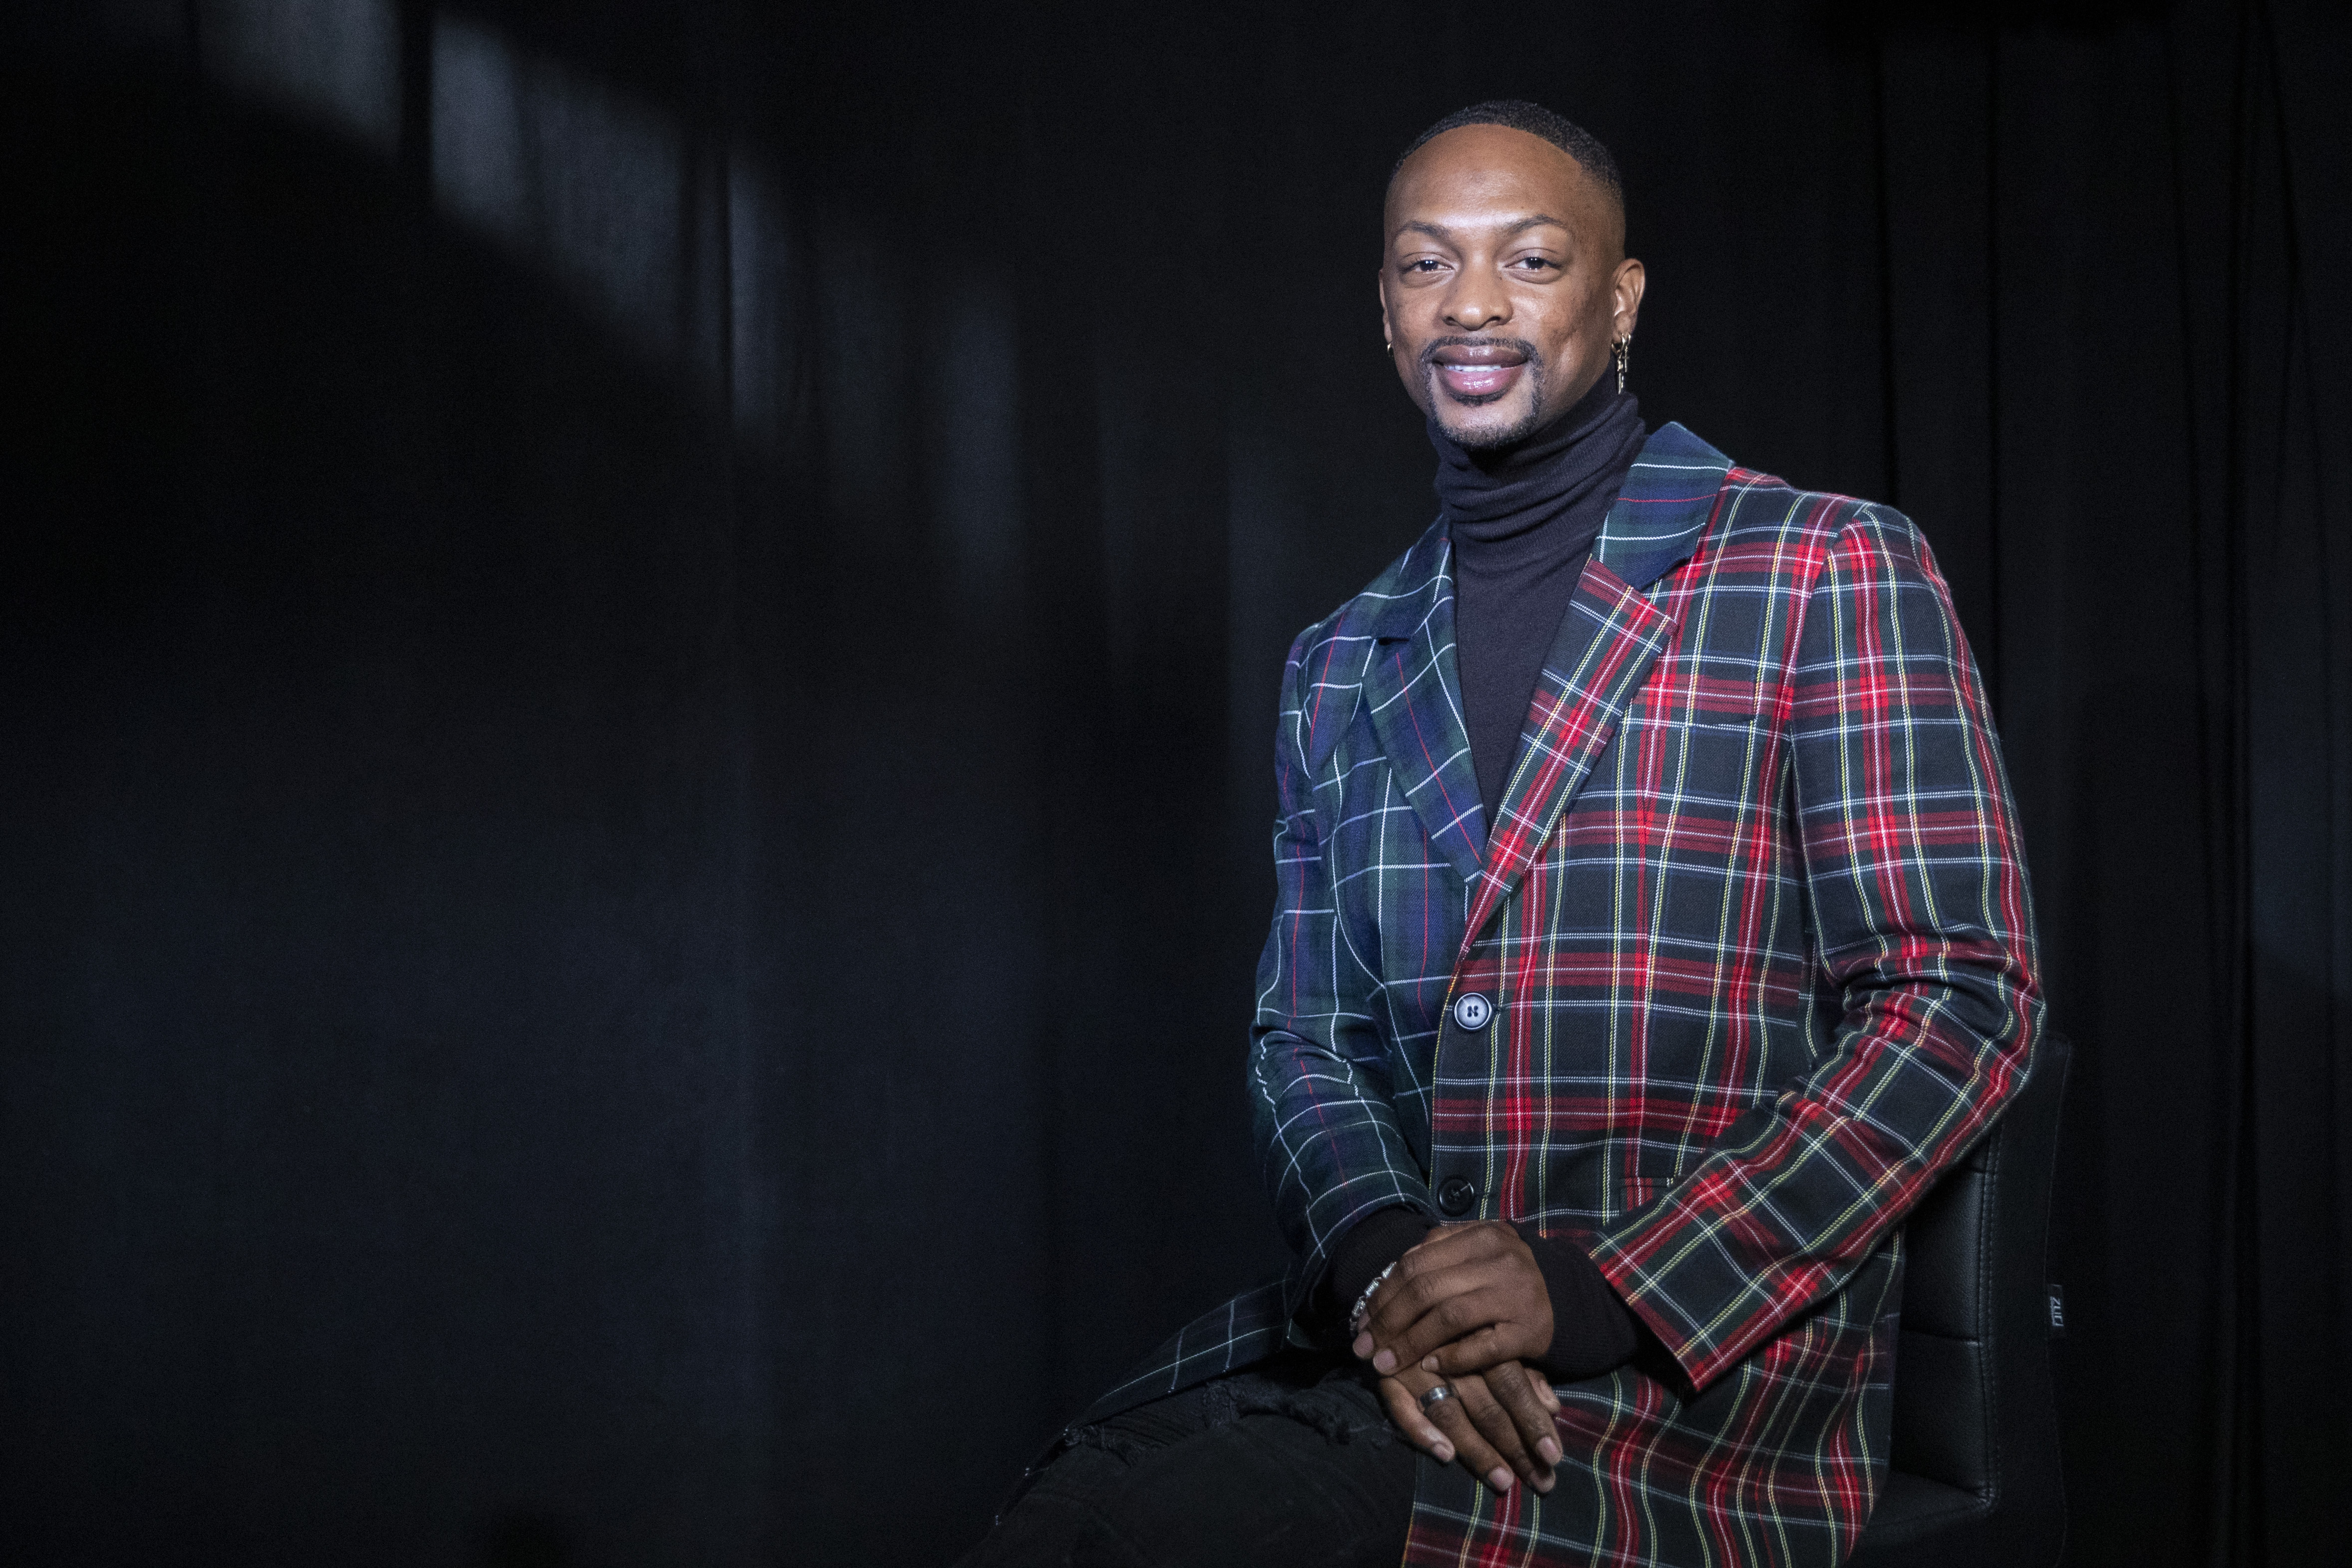 Fashion designer LaQuan Smith poses for a portrait in New York. Some see the self-trained Smith as a pioneer in pushing the fashion culture forward.